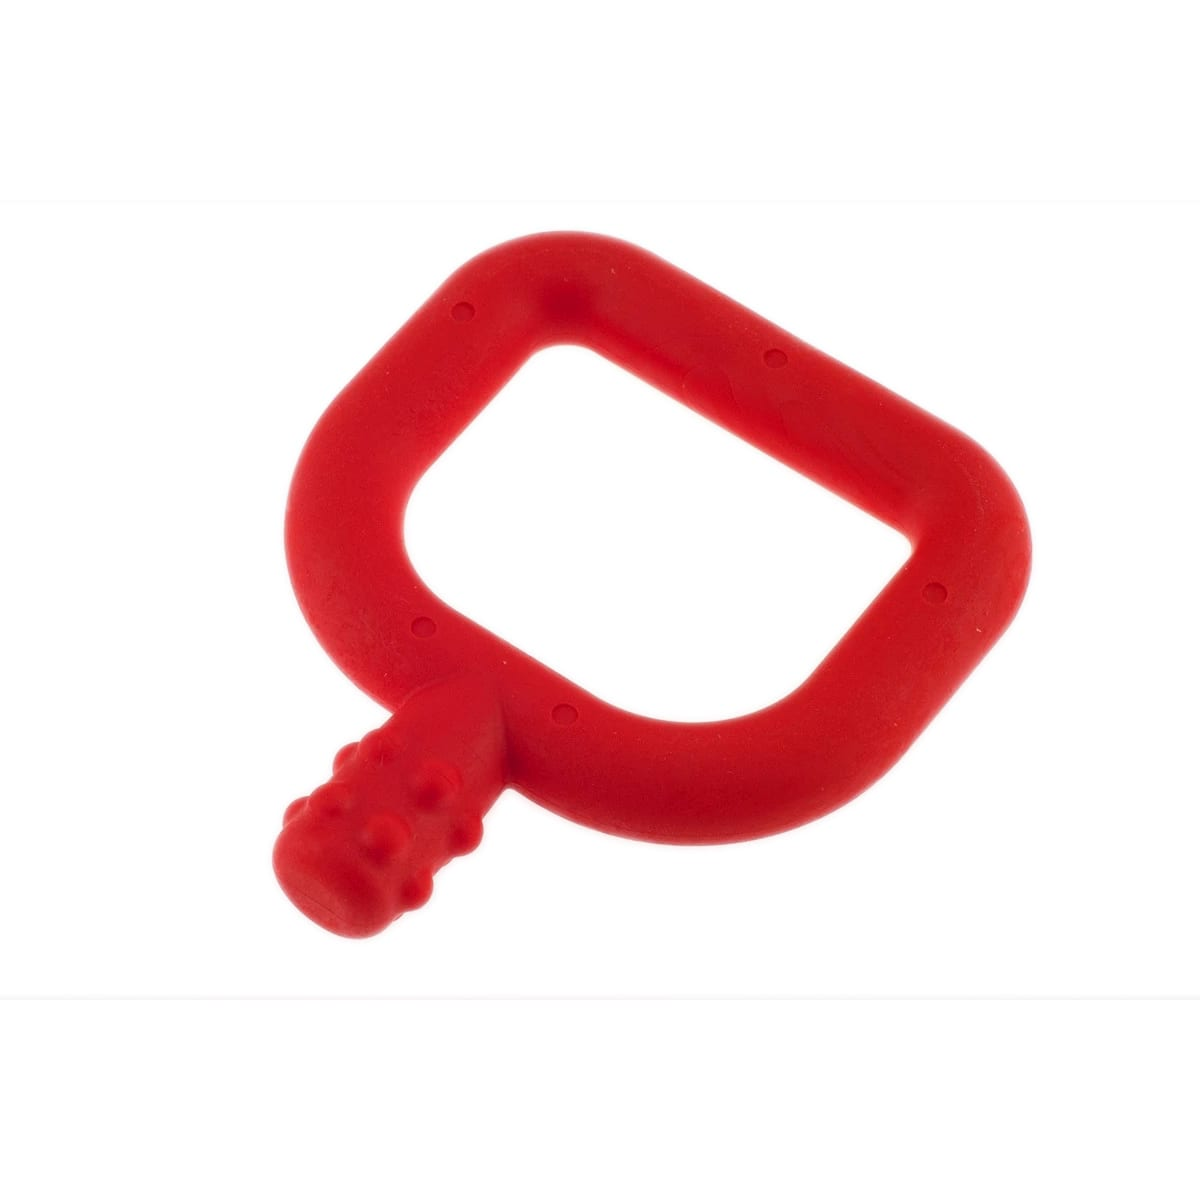 MINI CHEWY - RED KNOBBY - STAGE 2 TEETHER